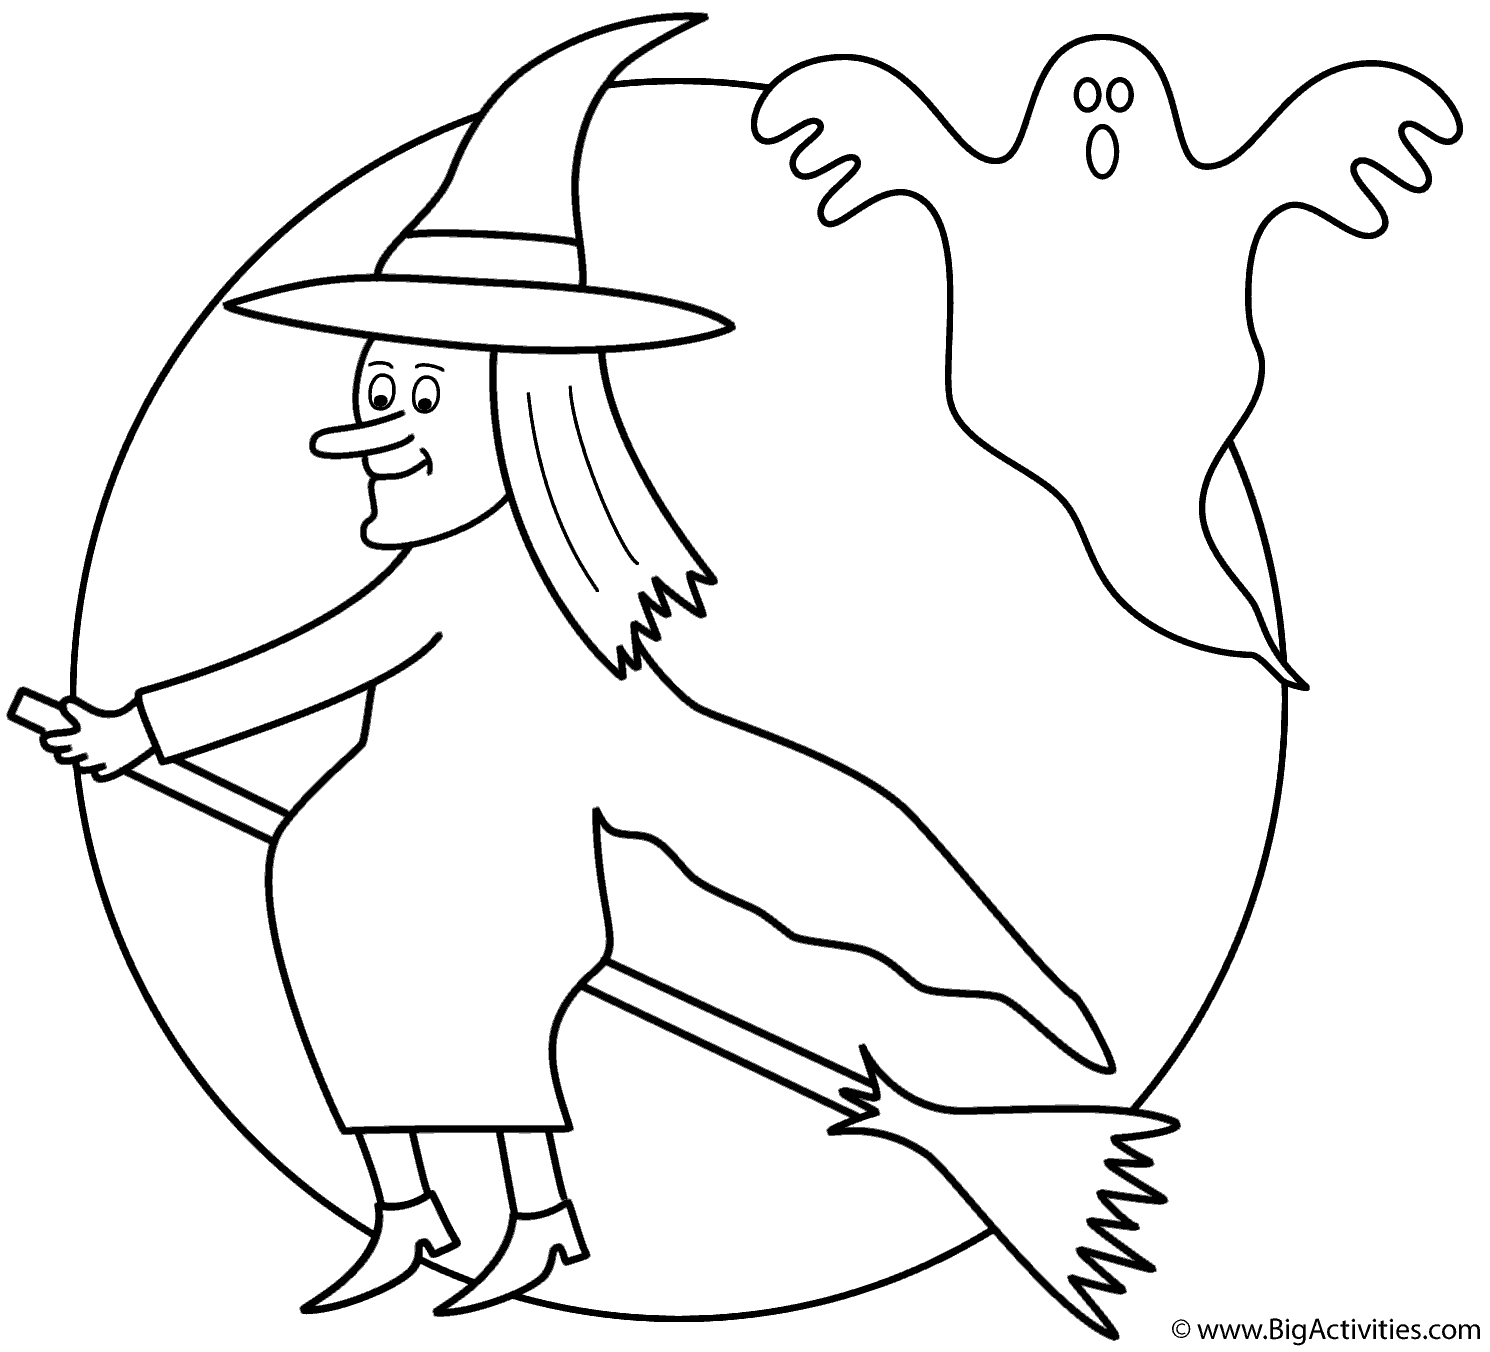 1490x1352 Witch On Broom With The Moon And Ghost